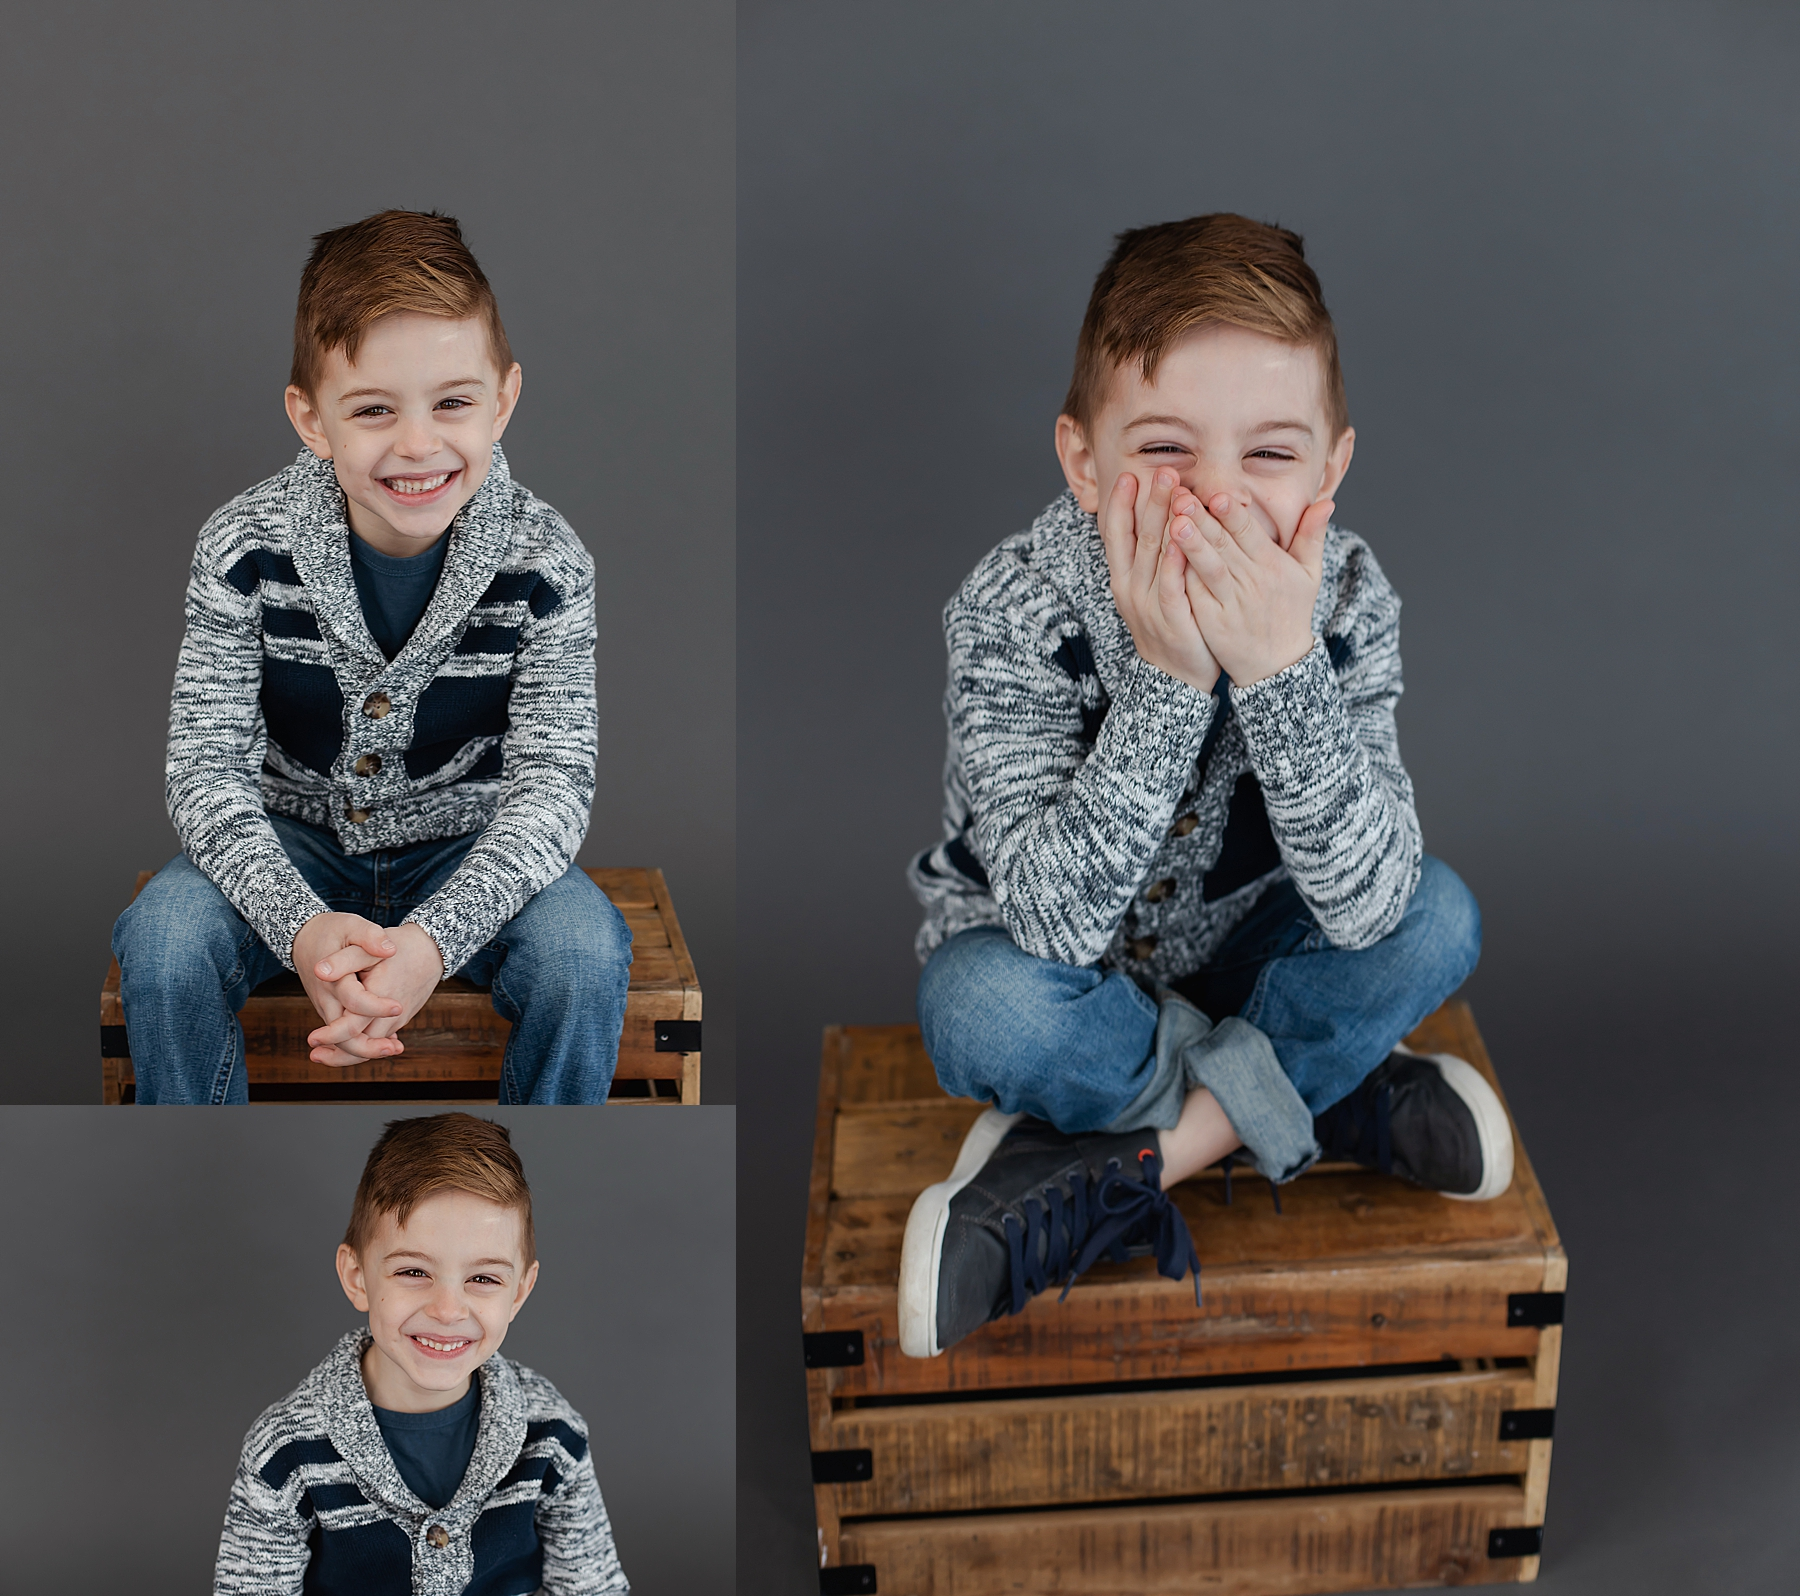 little boy laughing in photos how to take good pictures kristina rose photography